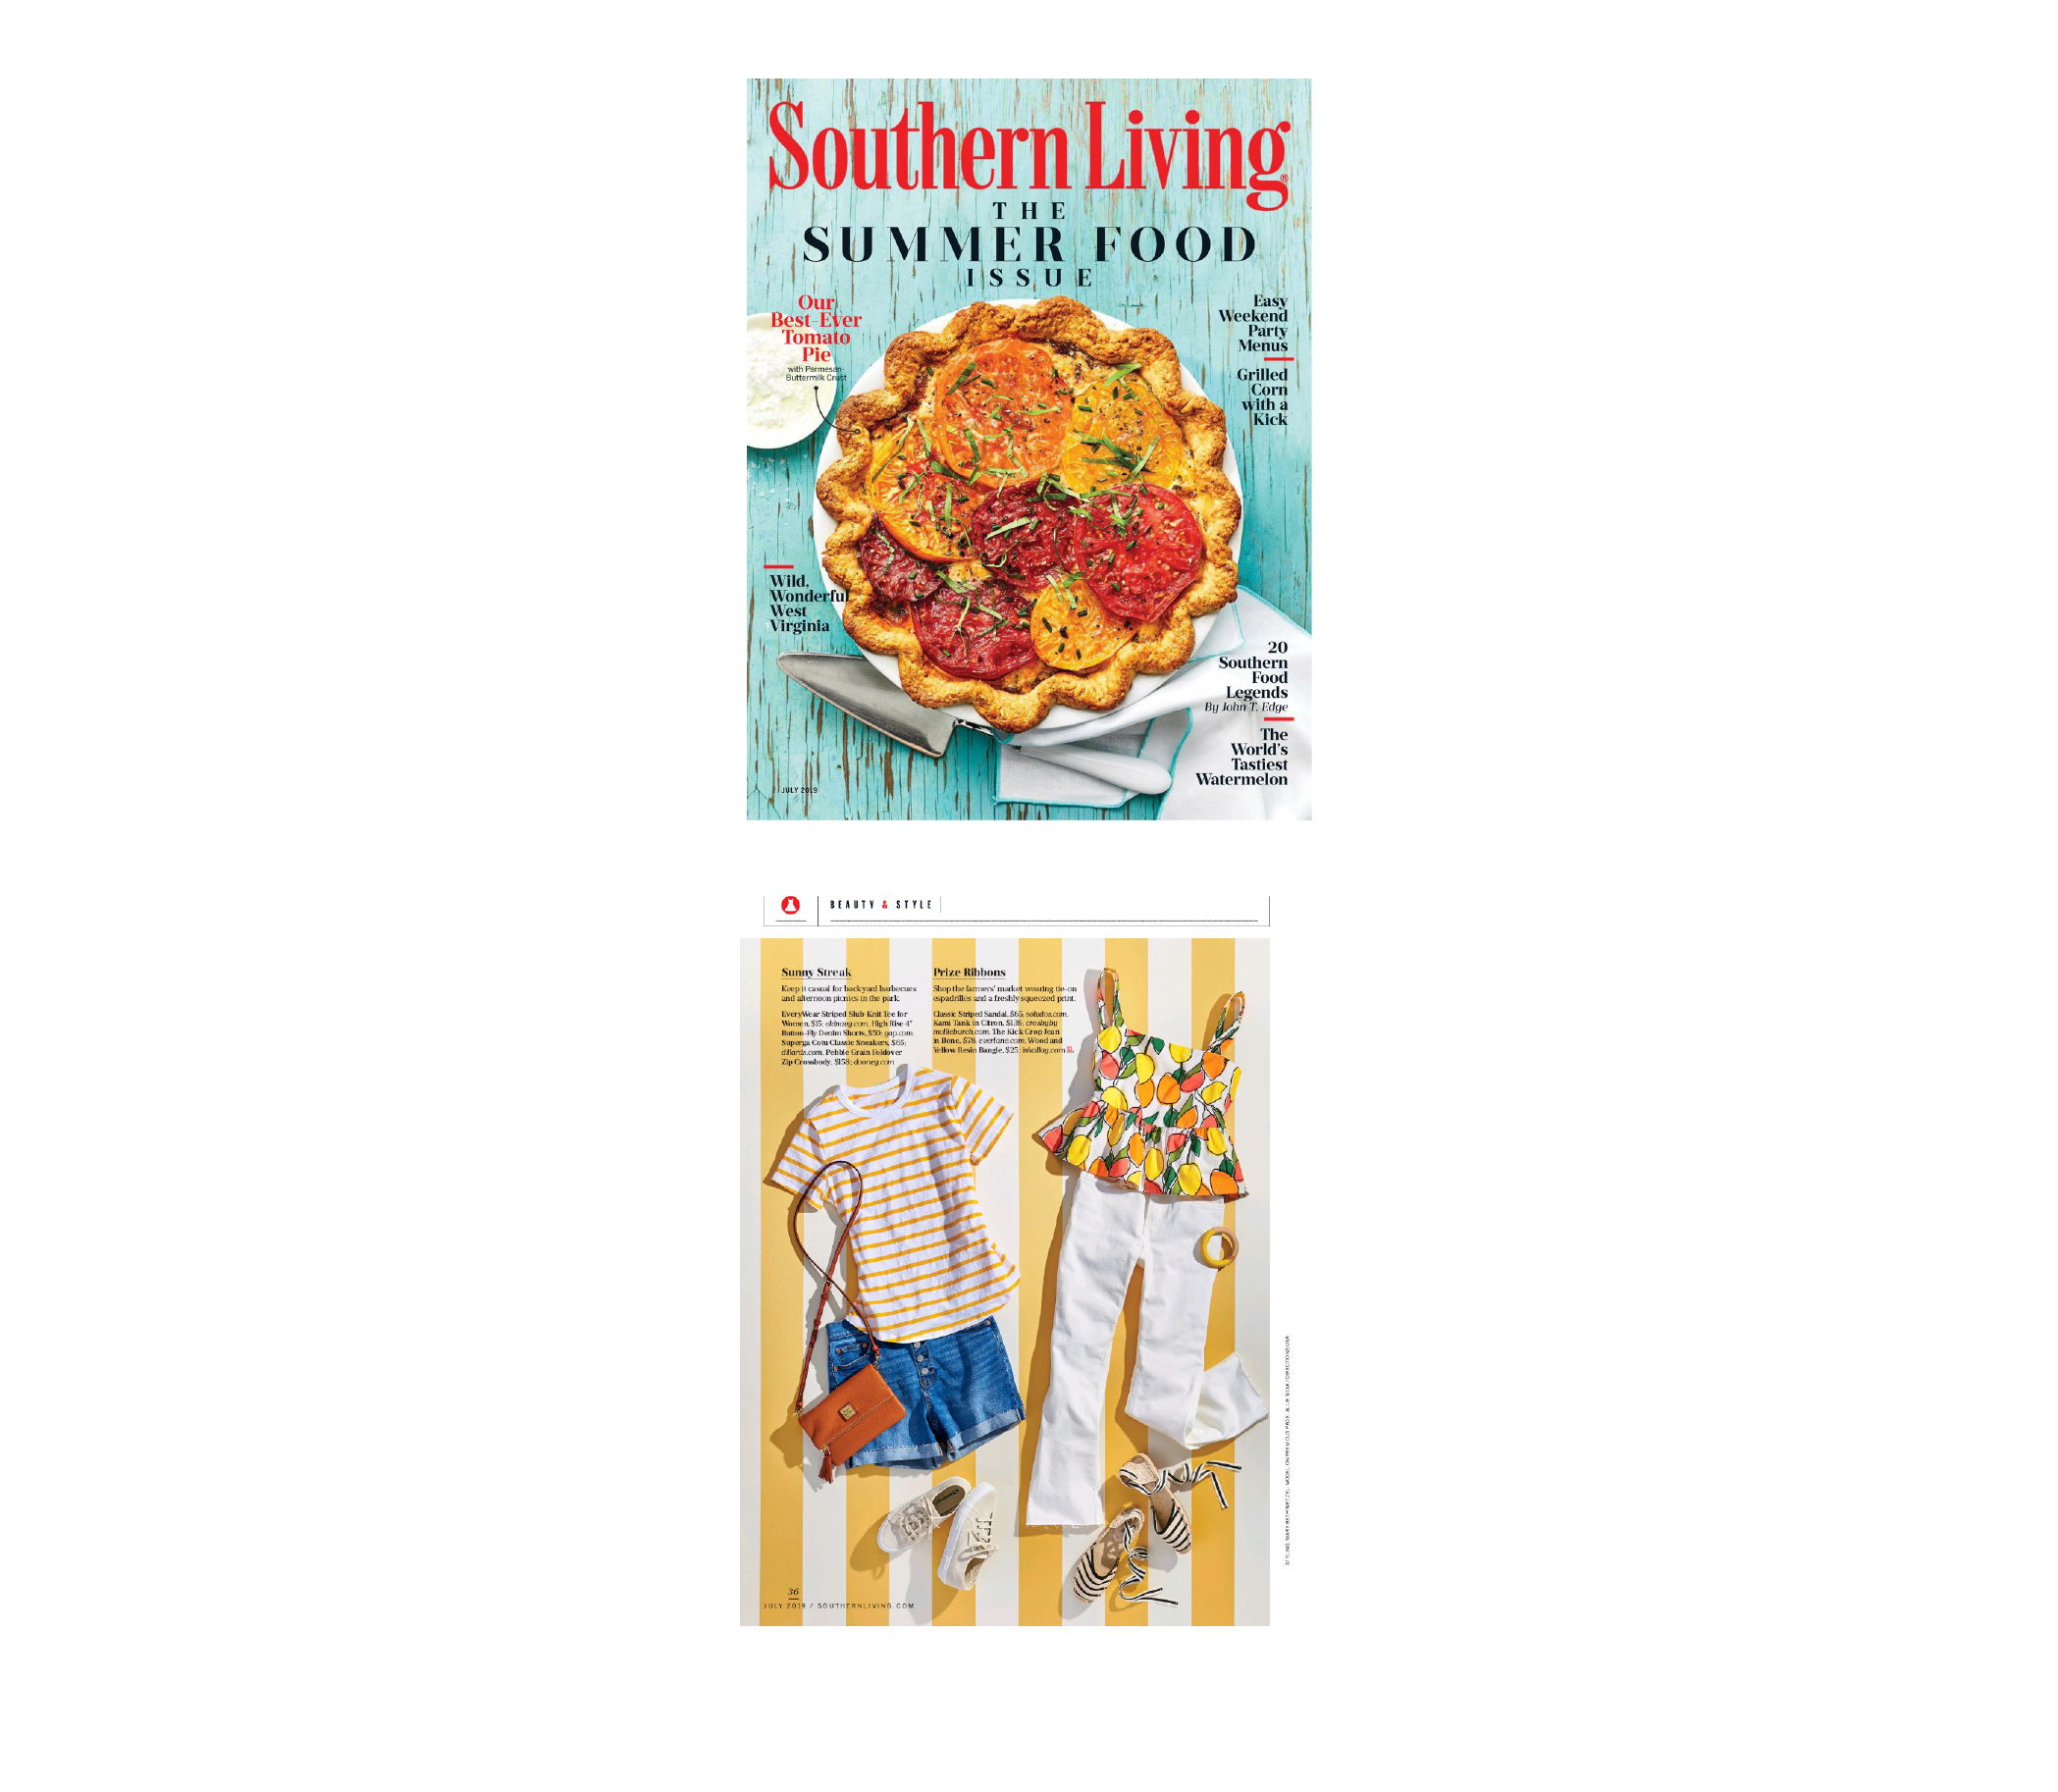 Southern Living | July 2019 Cover and Beauty and Style magazine article pages